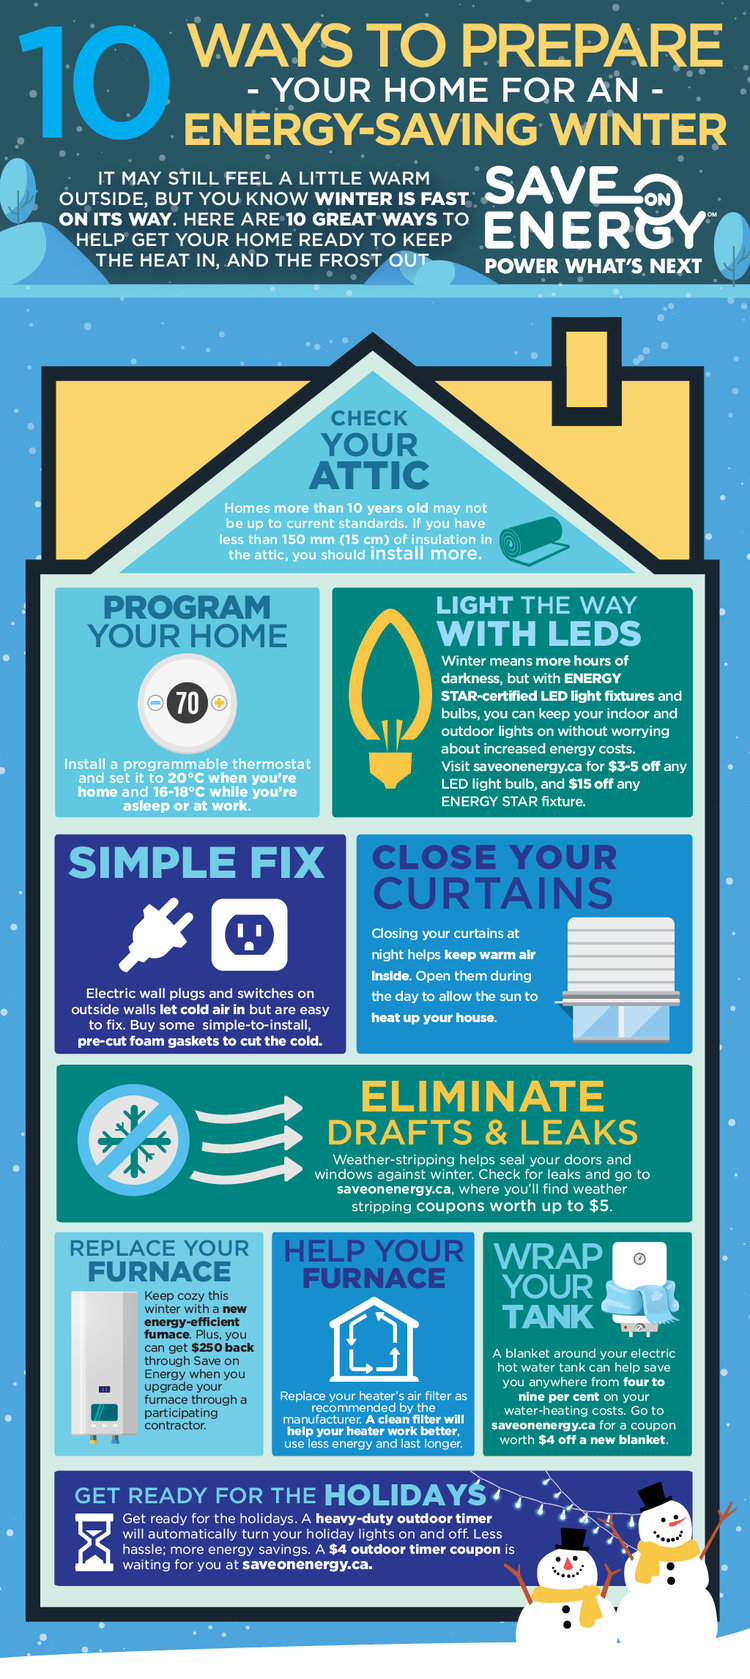 10+Ways+to+Prepare+Your+Home+for+Winter_nov10-01.jpg